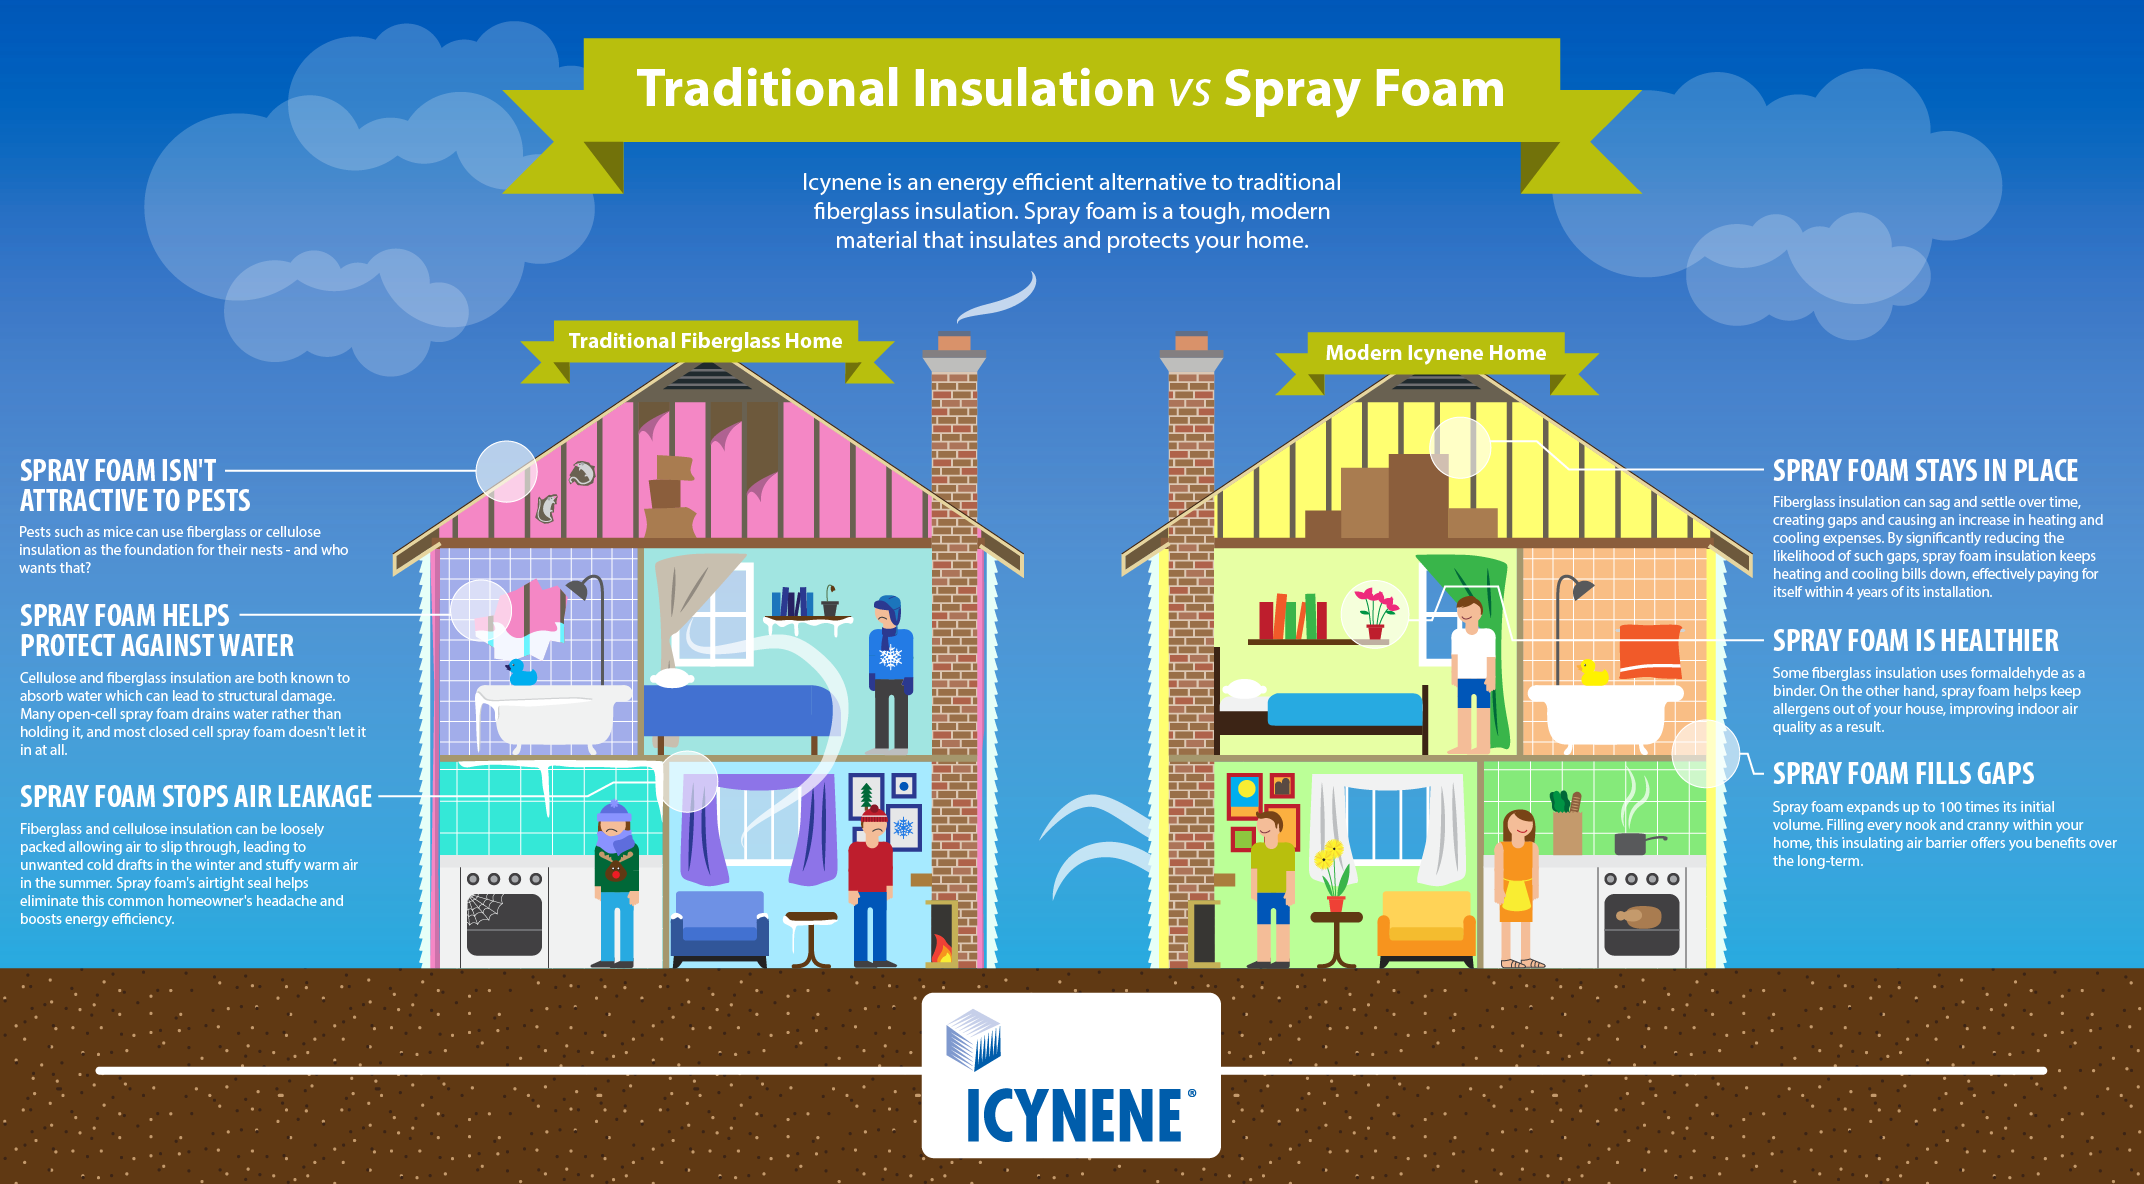 Helps To Explain Difference Between Fiberglass And Other Traditional Insulation And Modern Spray Foam Insulation Attic Flooring Attic Renovation Attic Remodel